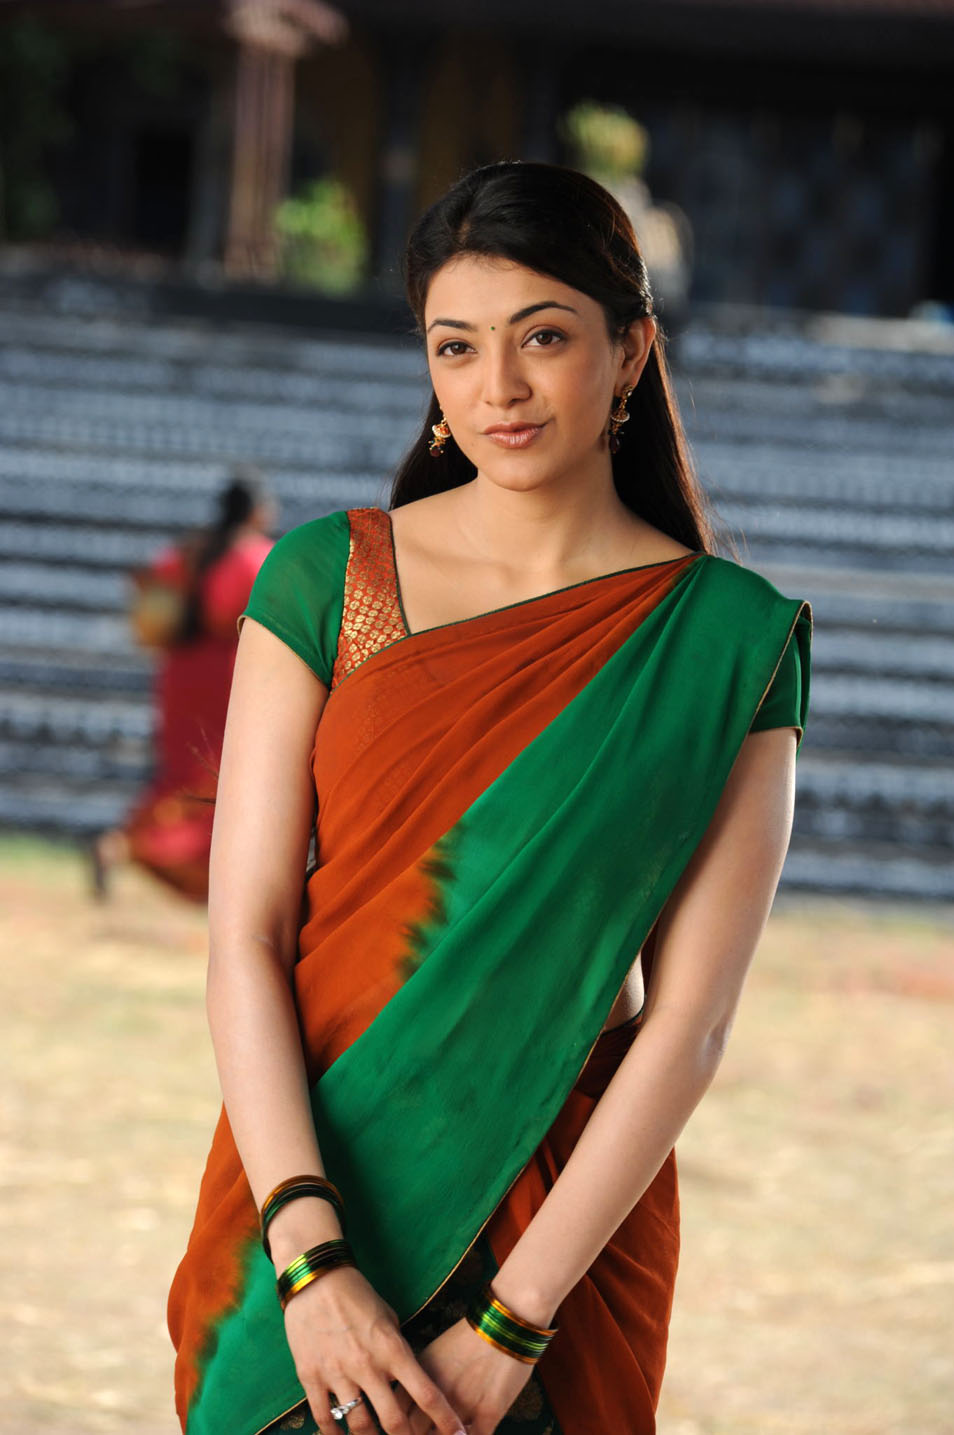 Kajal Agarwal Cute in Half Saree - Hot Film Actress Wallpapers - Hot Pictures - Actresses in Bikini